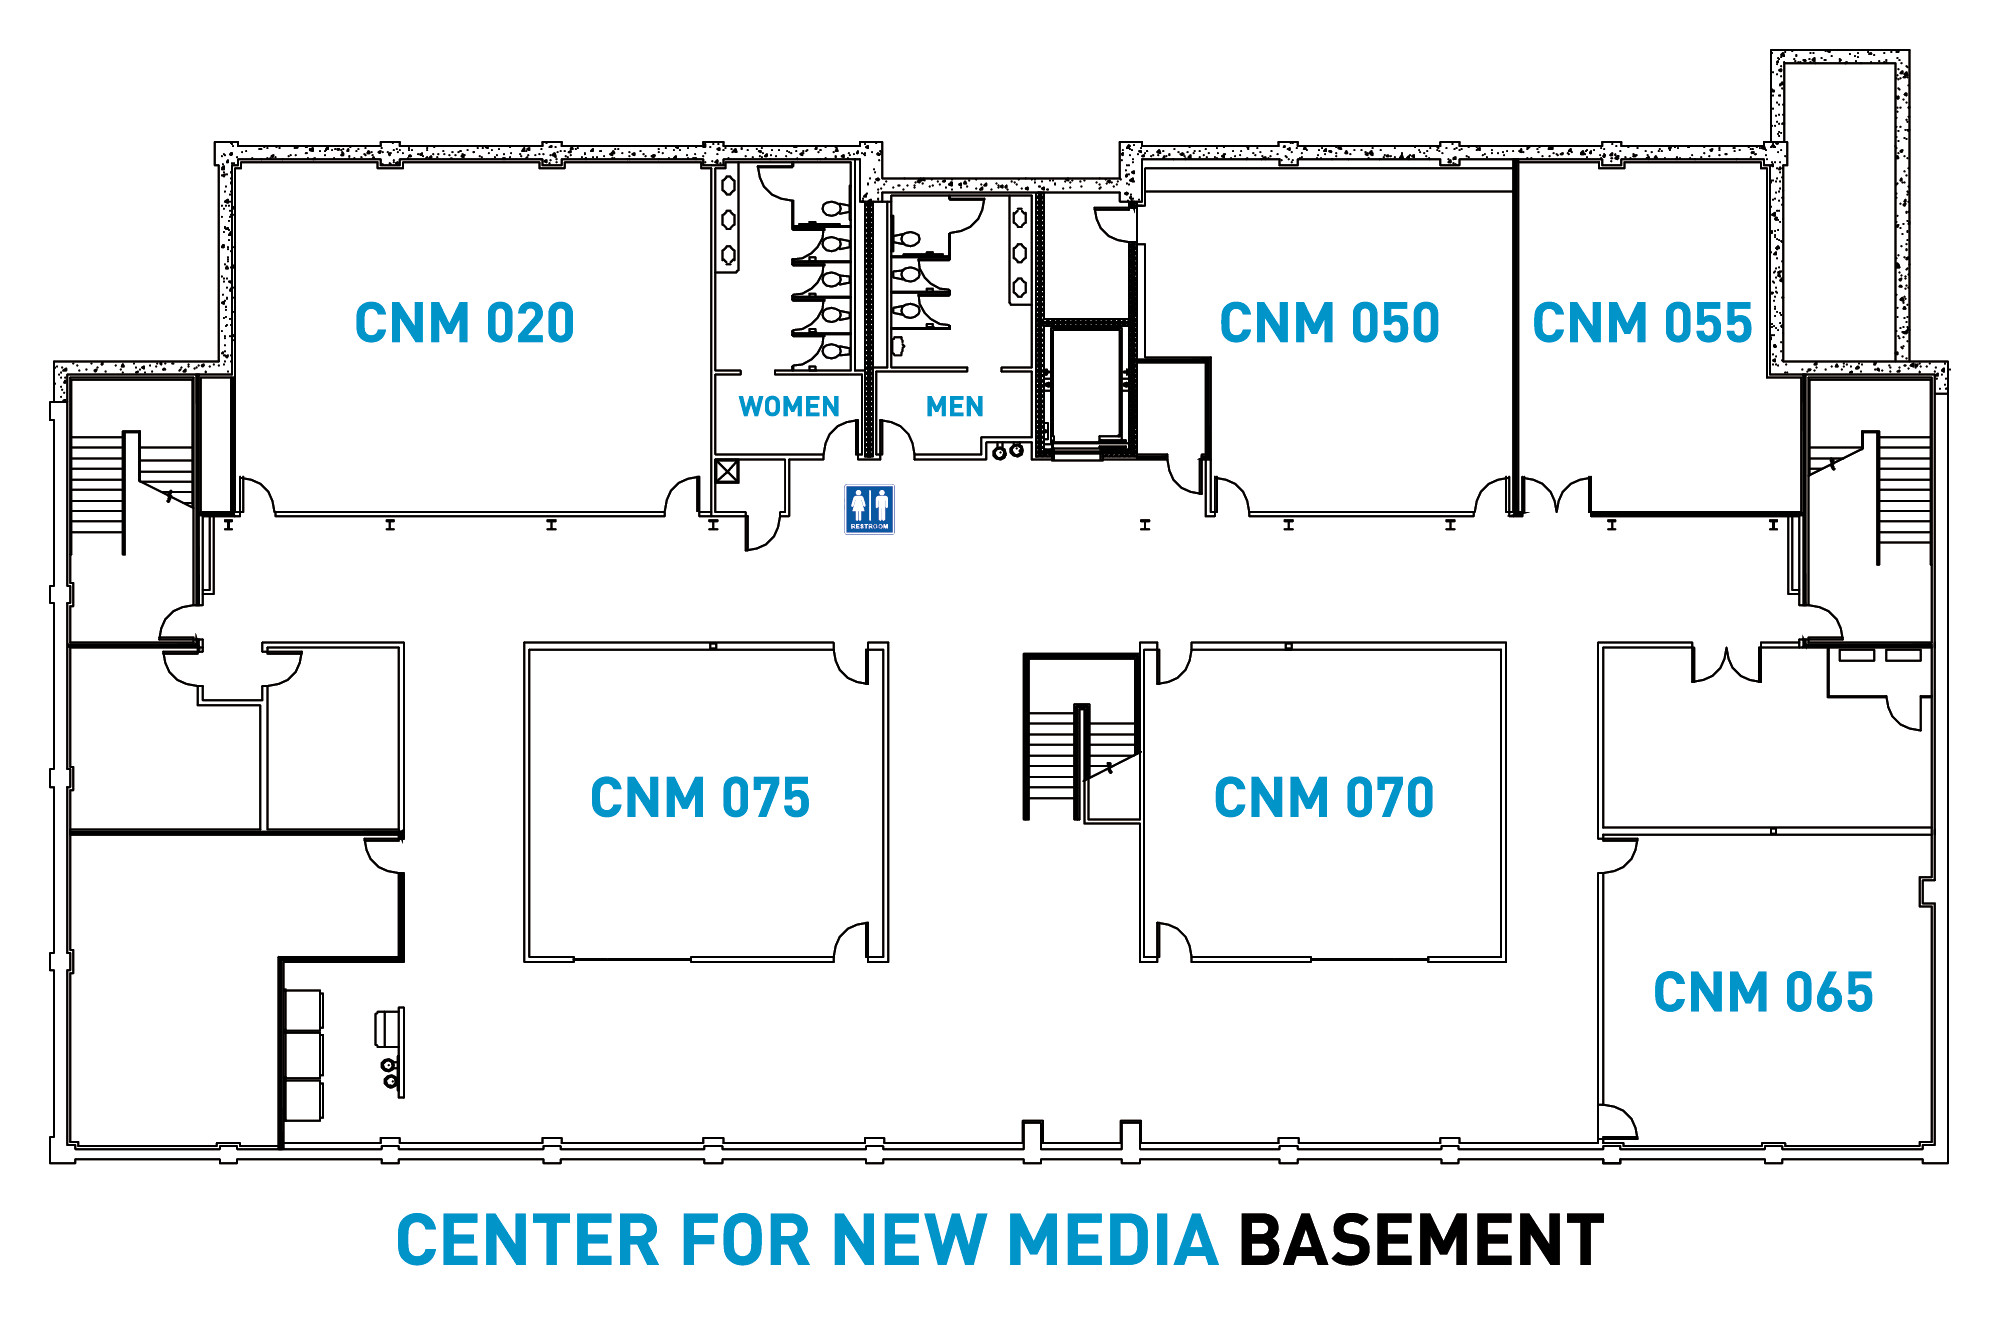 Center for New Media Map - Kalamazoo Valley Community College on kvcc texas township campus map, chemeketa community college campus map, kvcc groves campus center map,